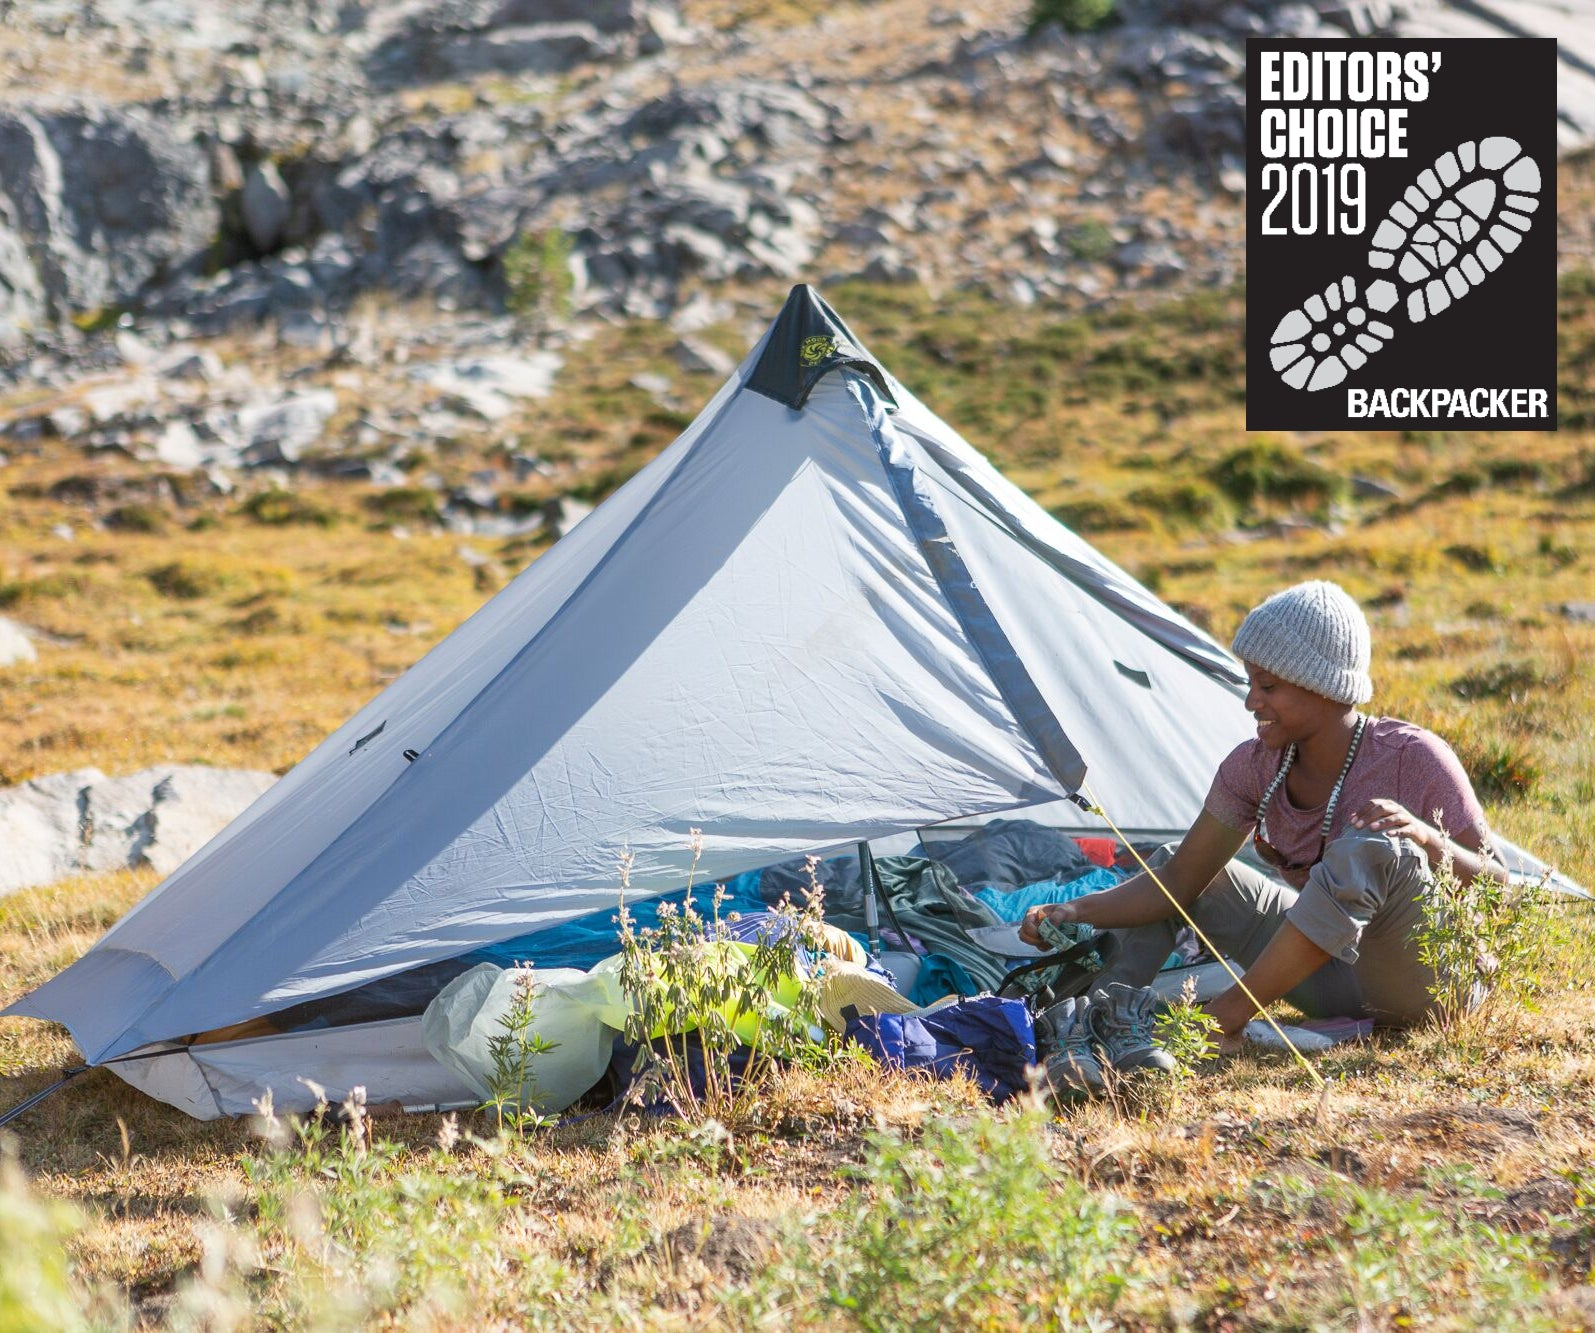 Lunar Solo Wins Backpacker Magazine 2019 Editors' Choice Award